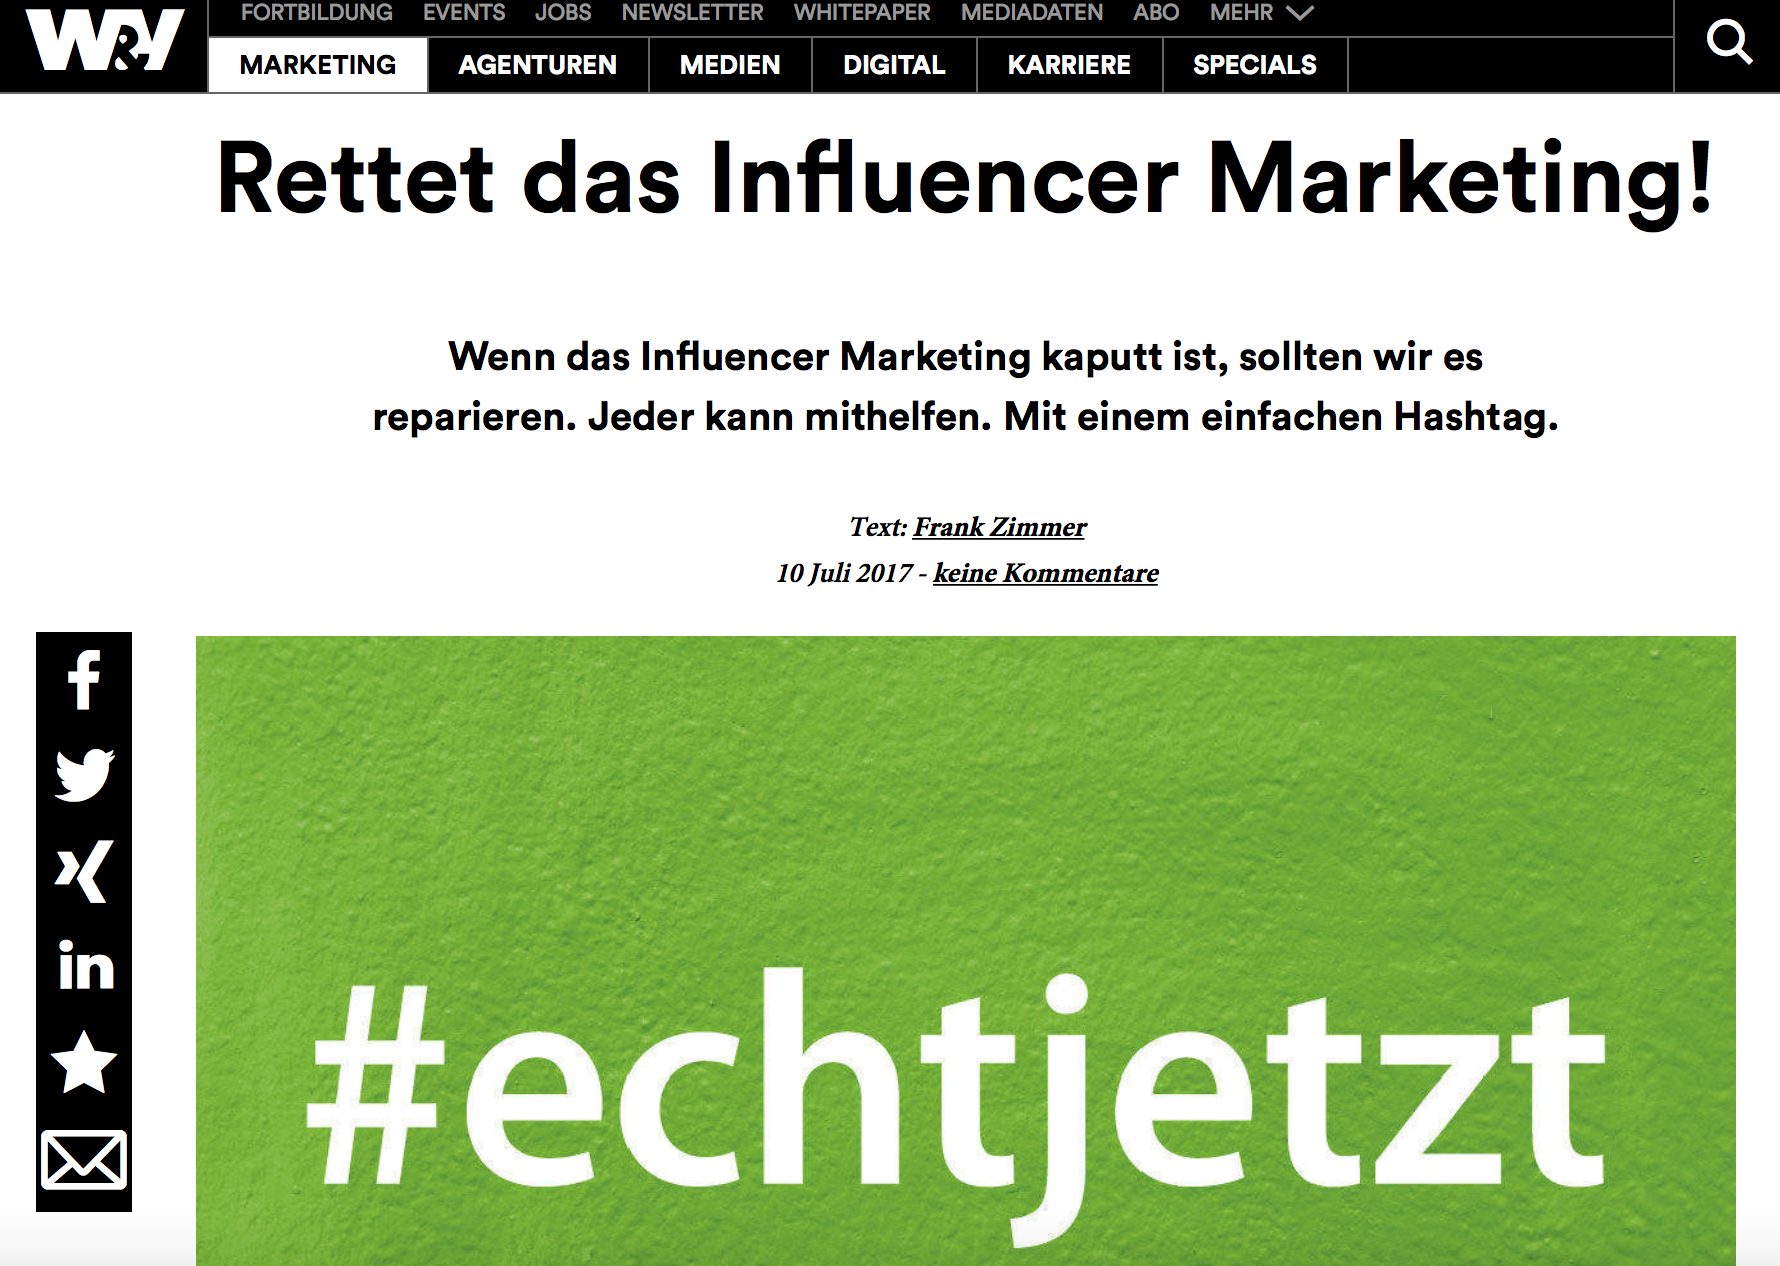 Rettet das Influencer Marketing